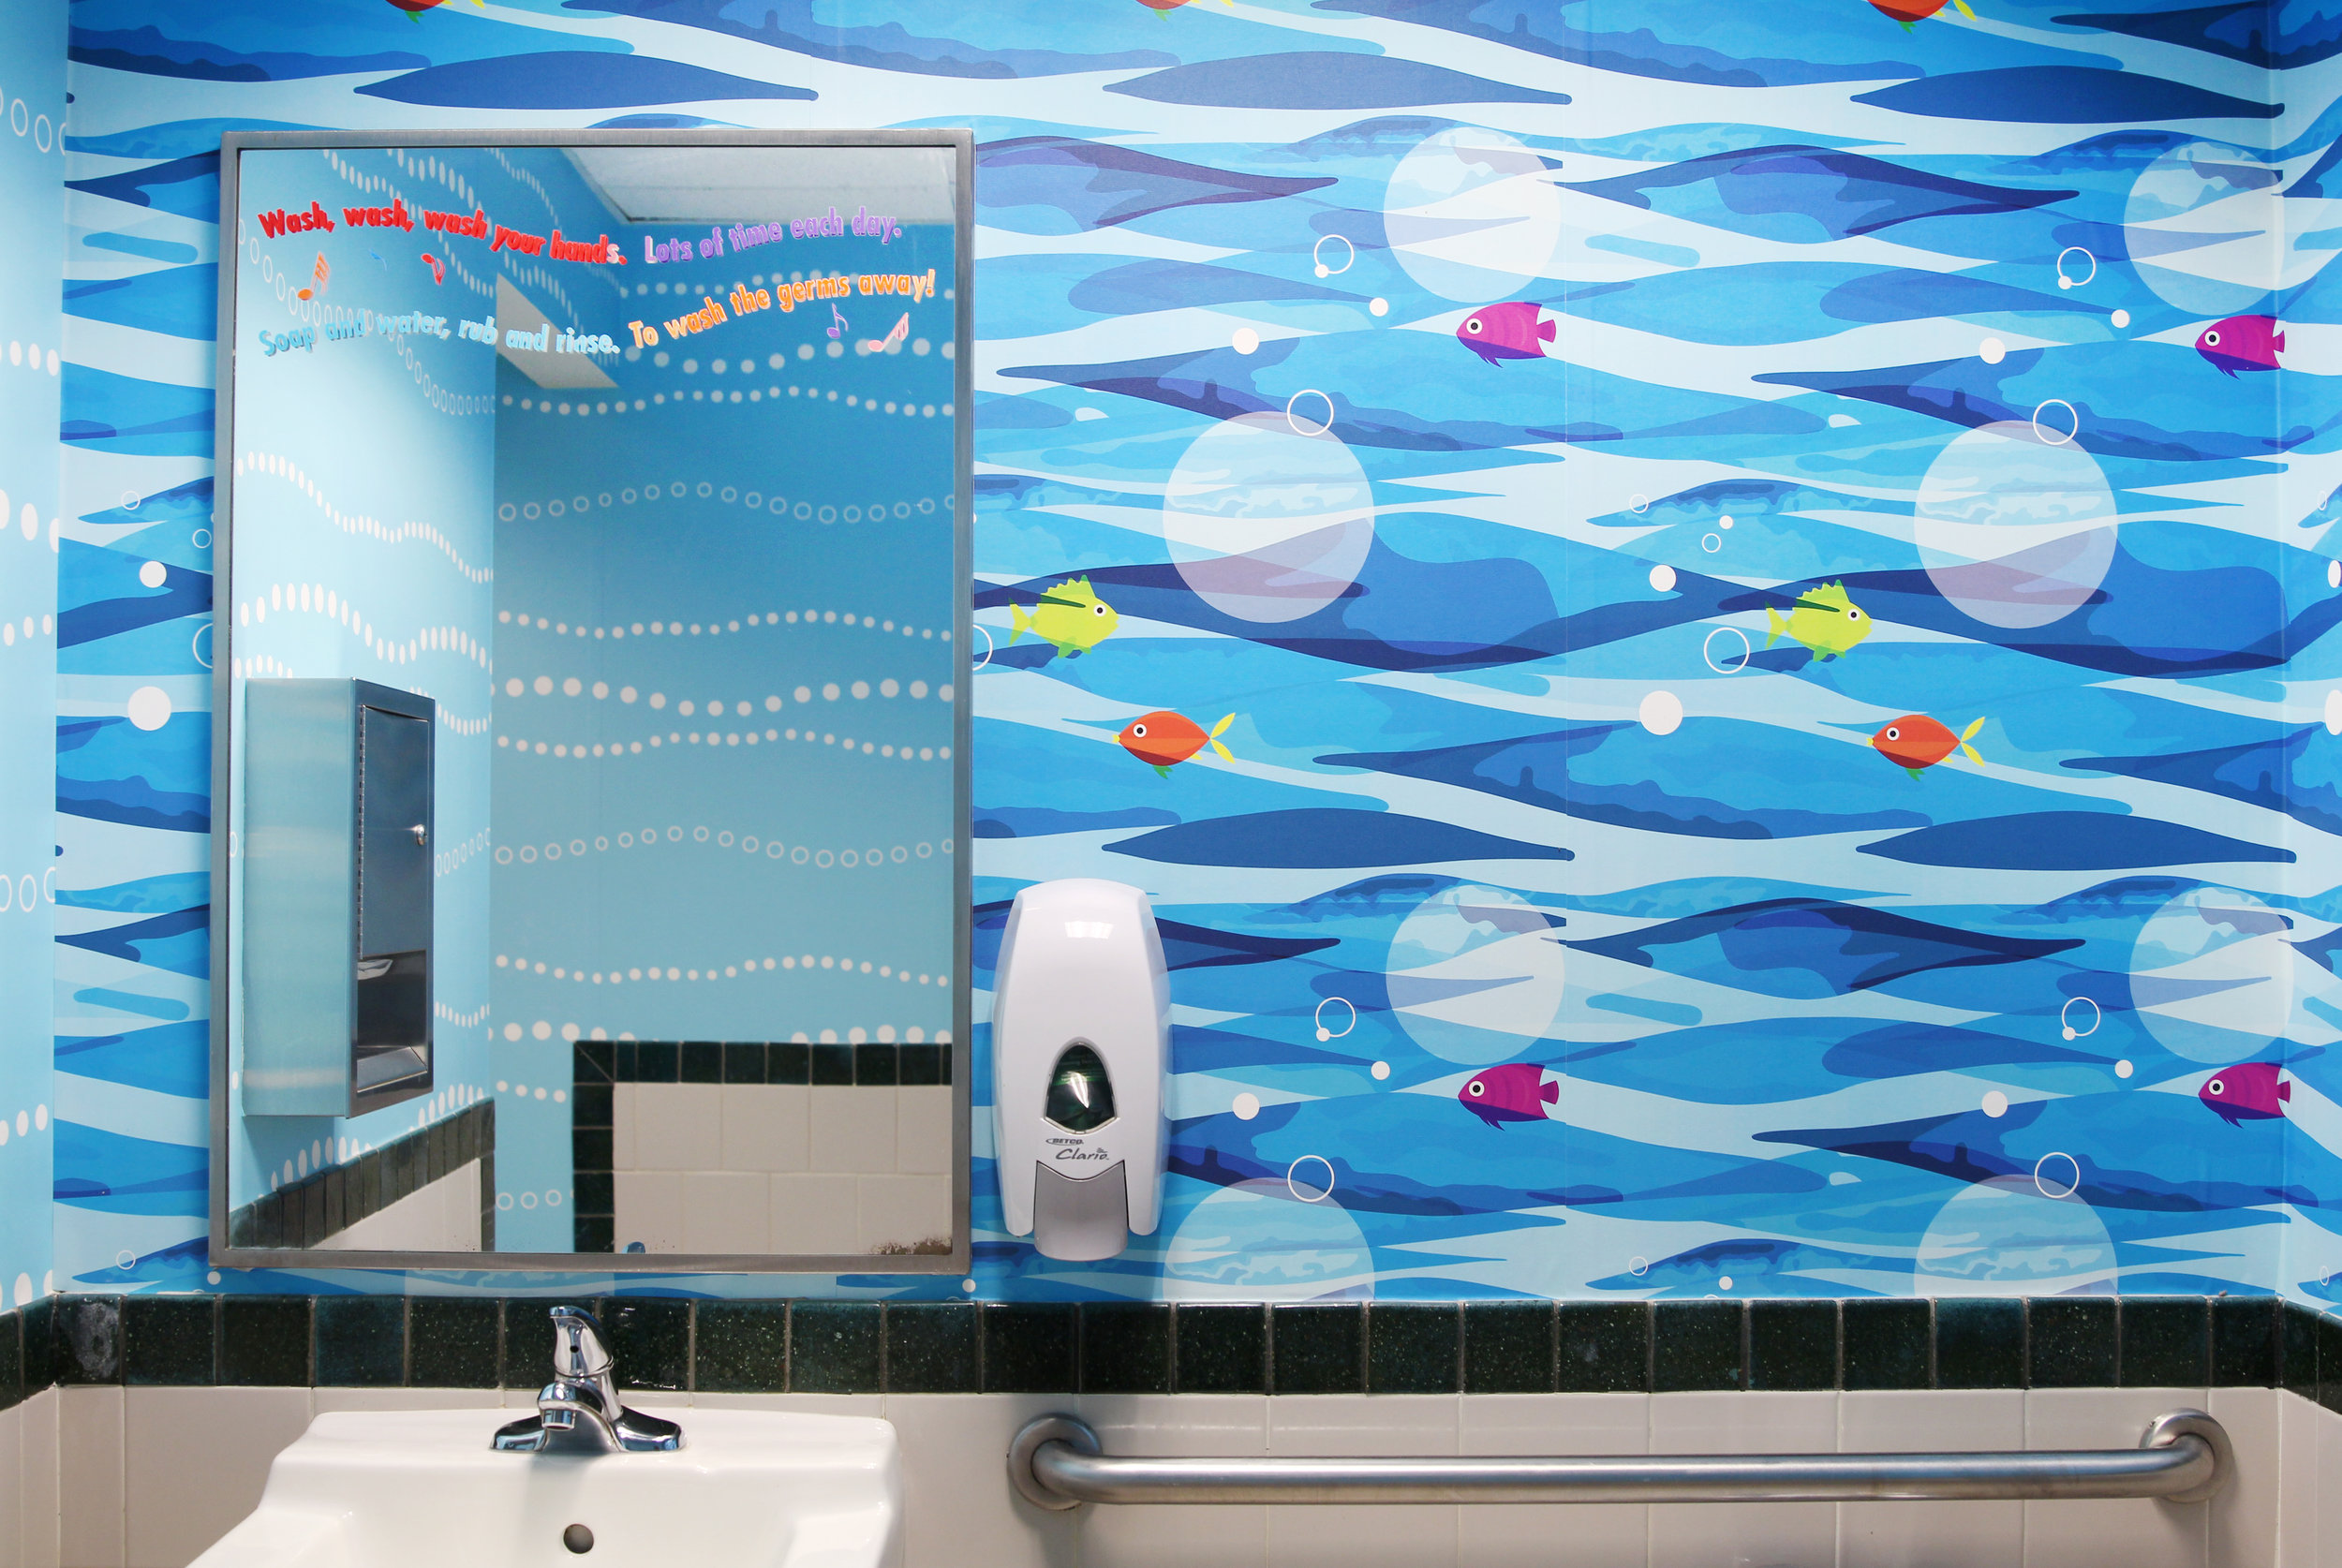 Here, you can see both custom patterns, the fish along one wall and the fun blue and white bubbles reflected in the mirror.